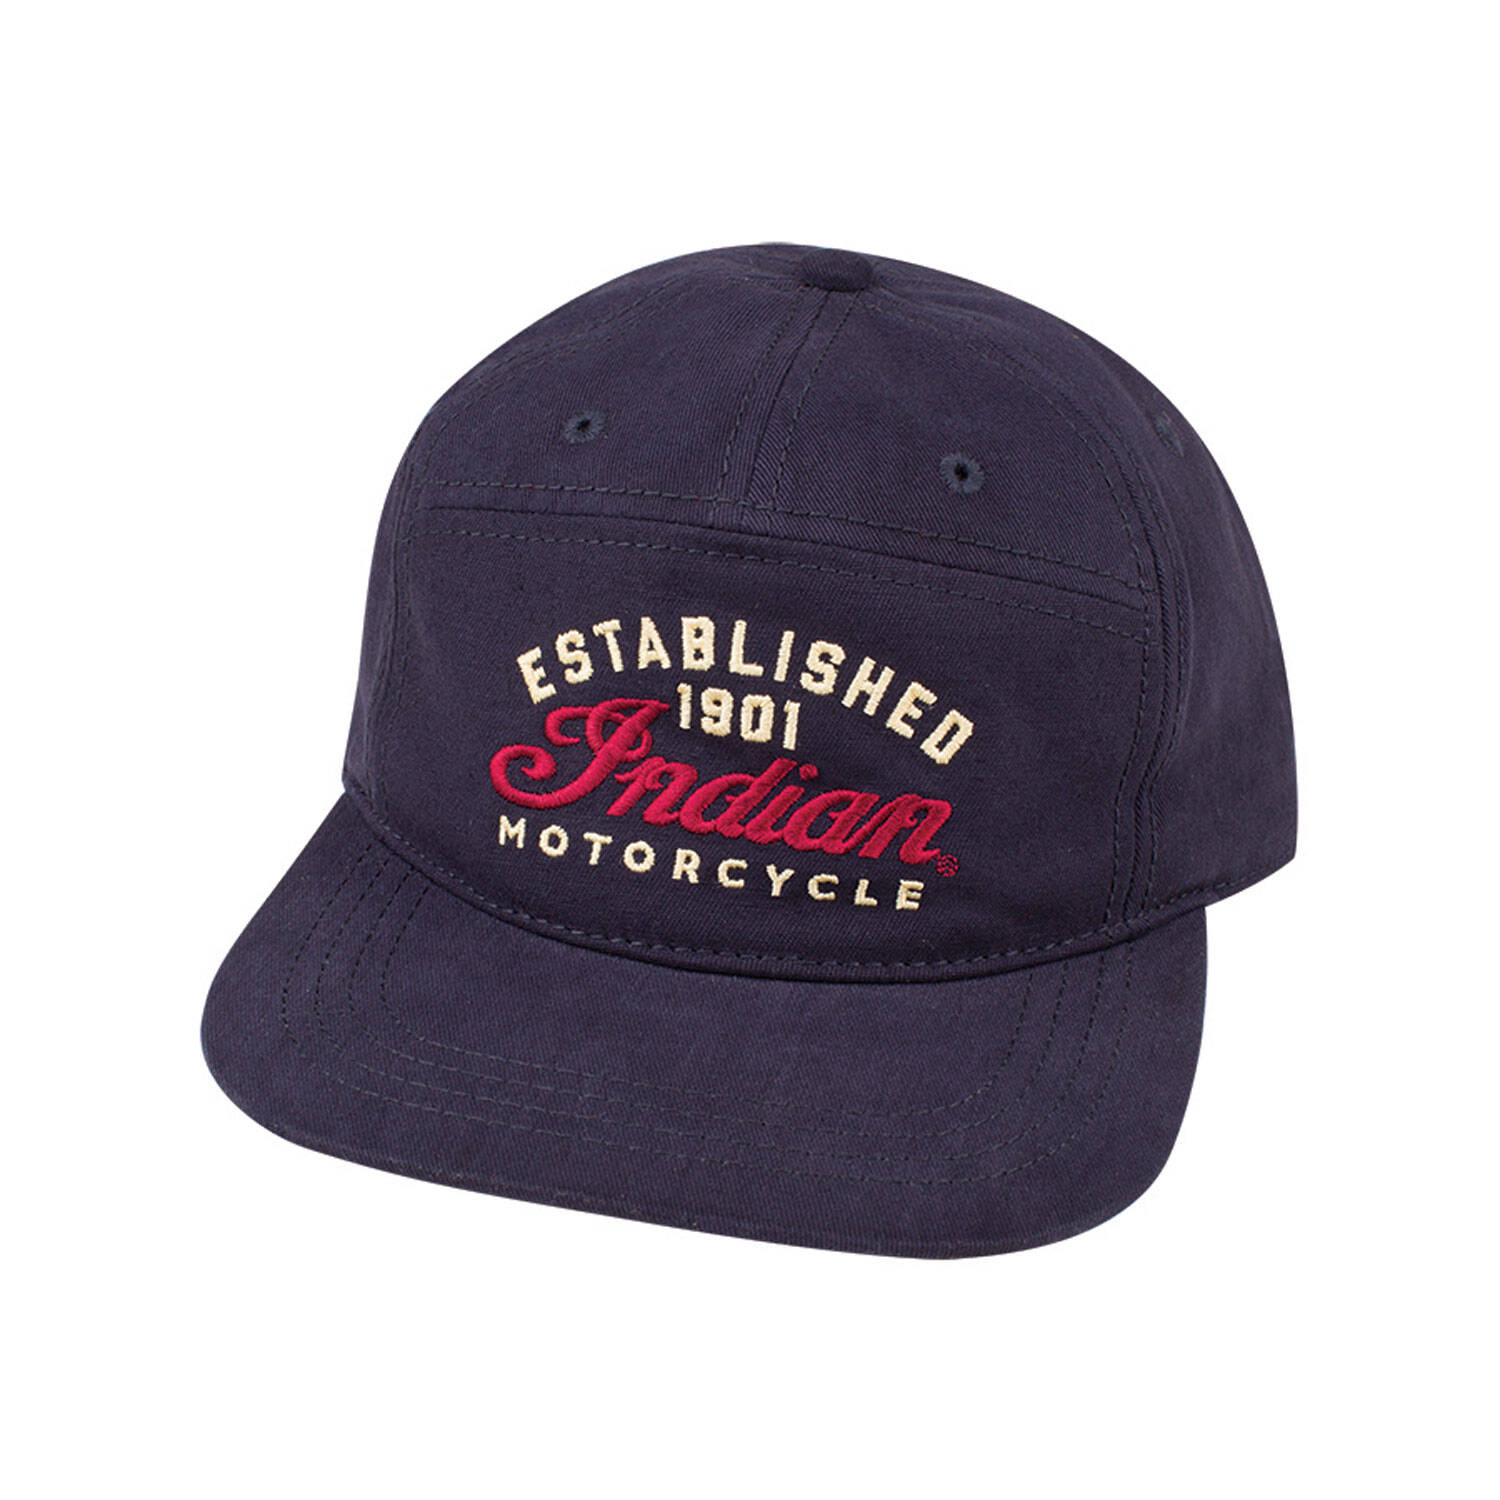 Established 1901 Hat, Navy